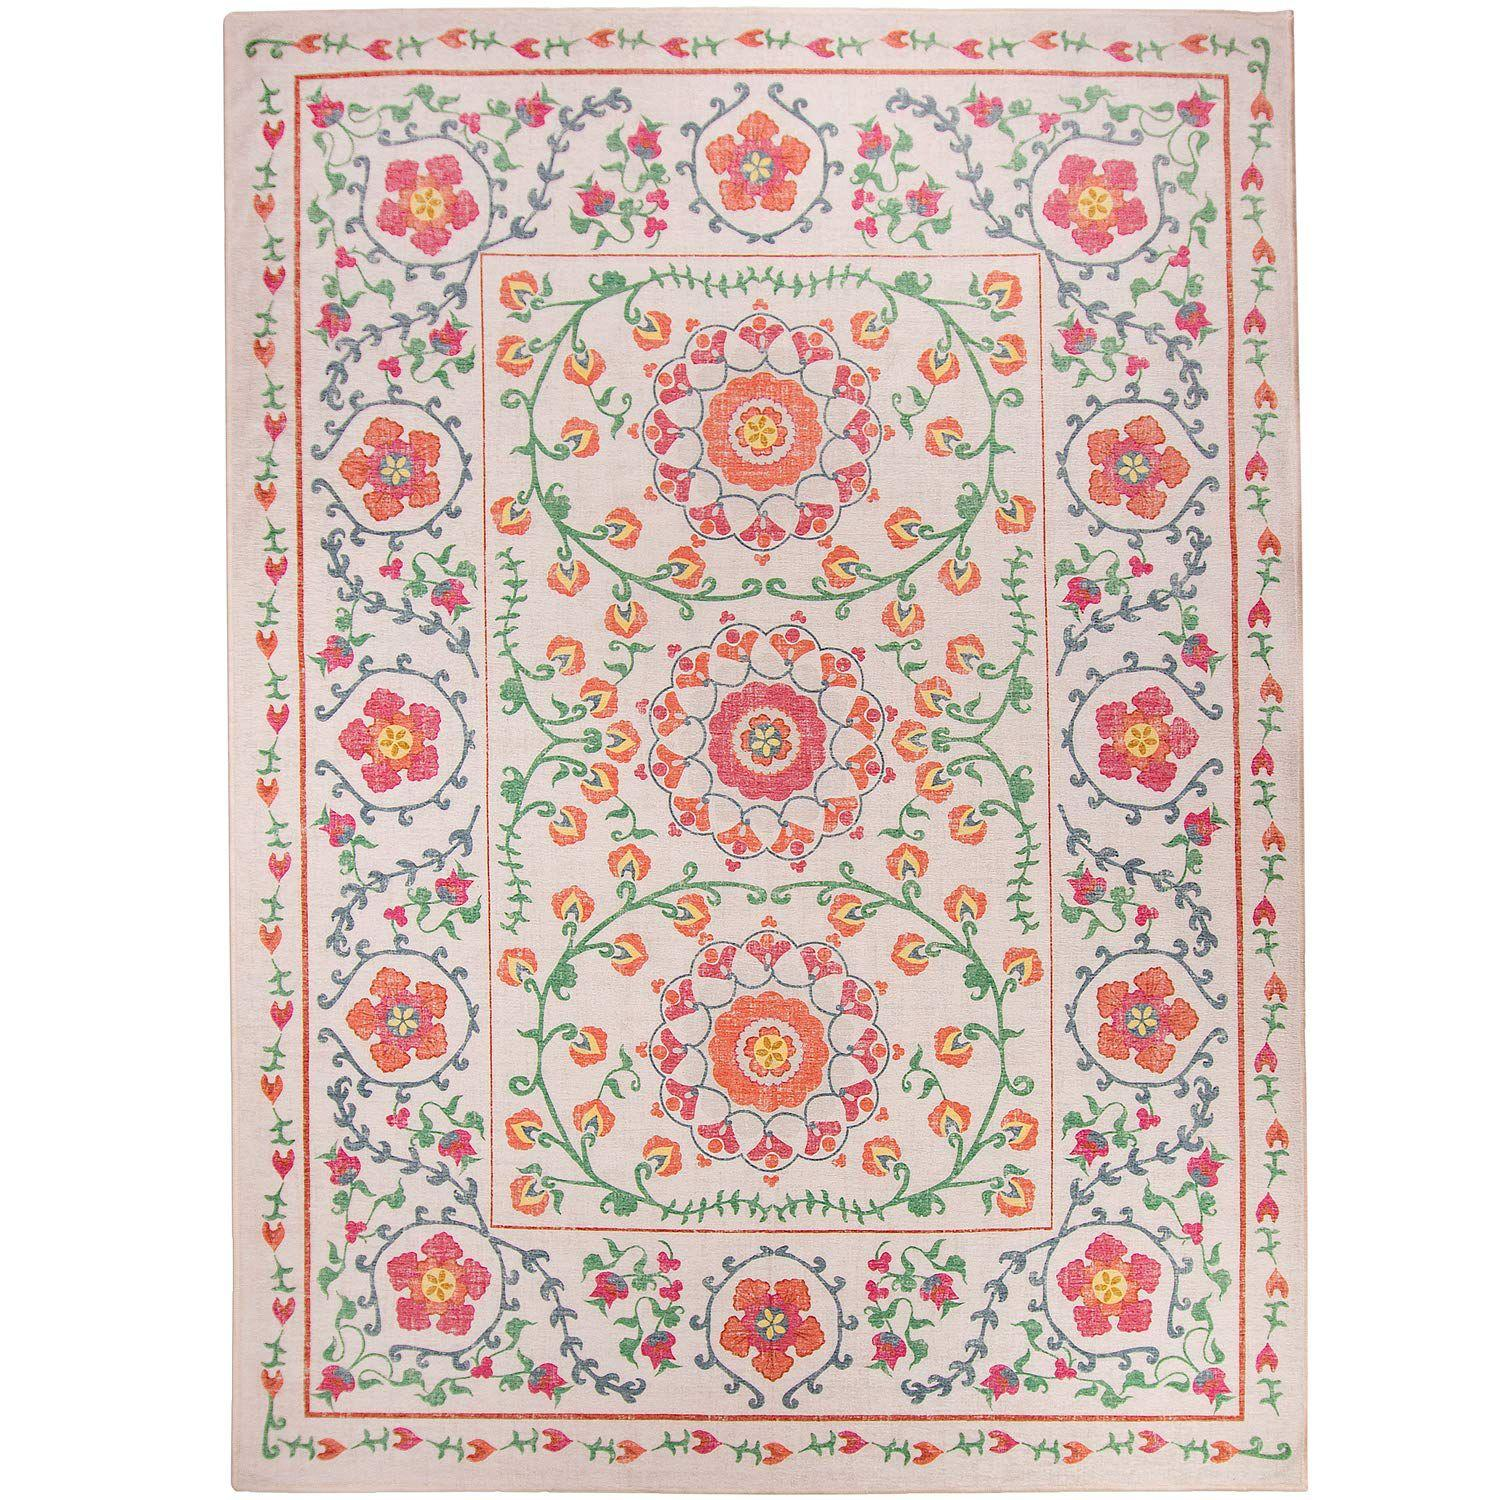 Stress In Rug.Machine Washable Rugs For Chic Stress Free Home Style